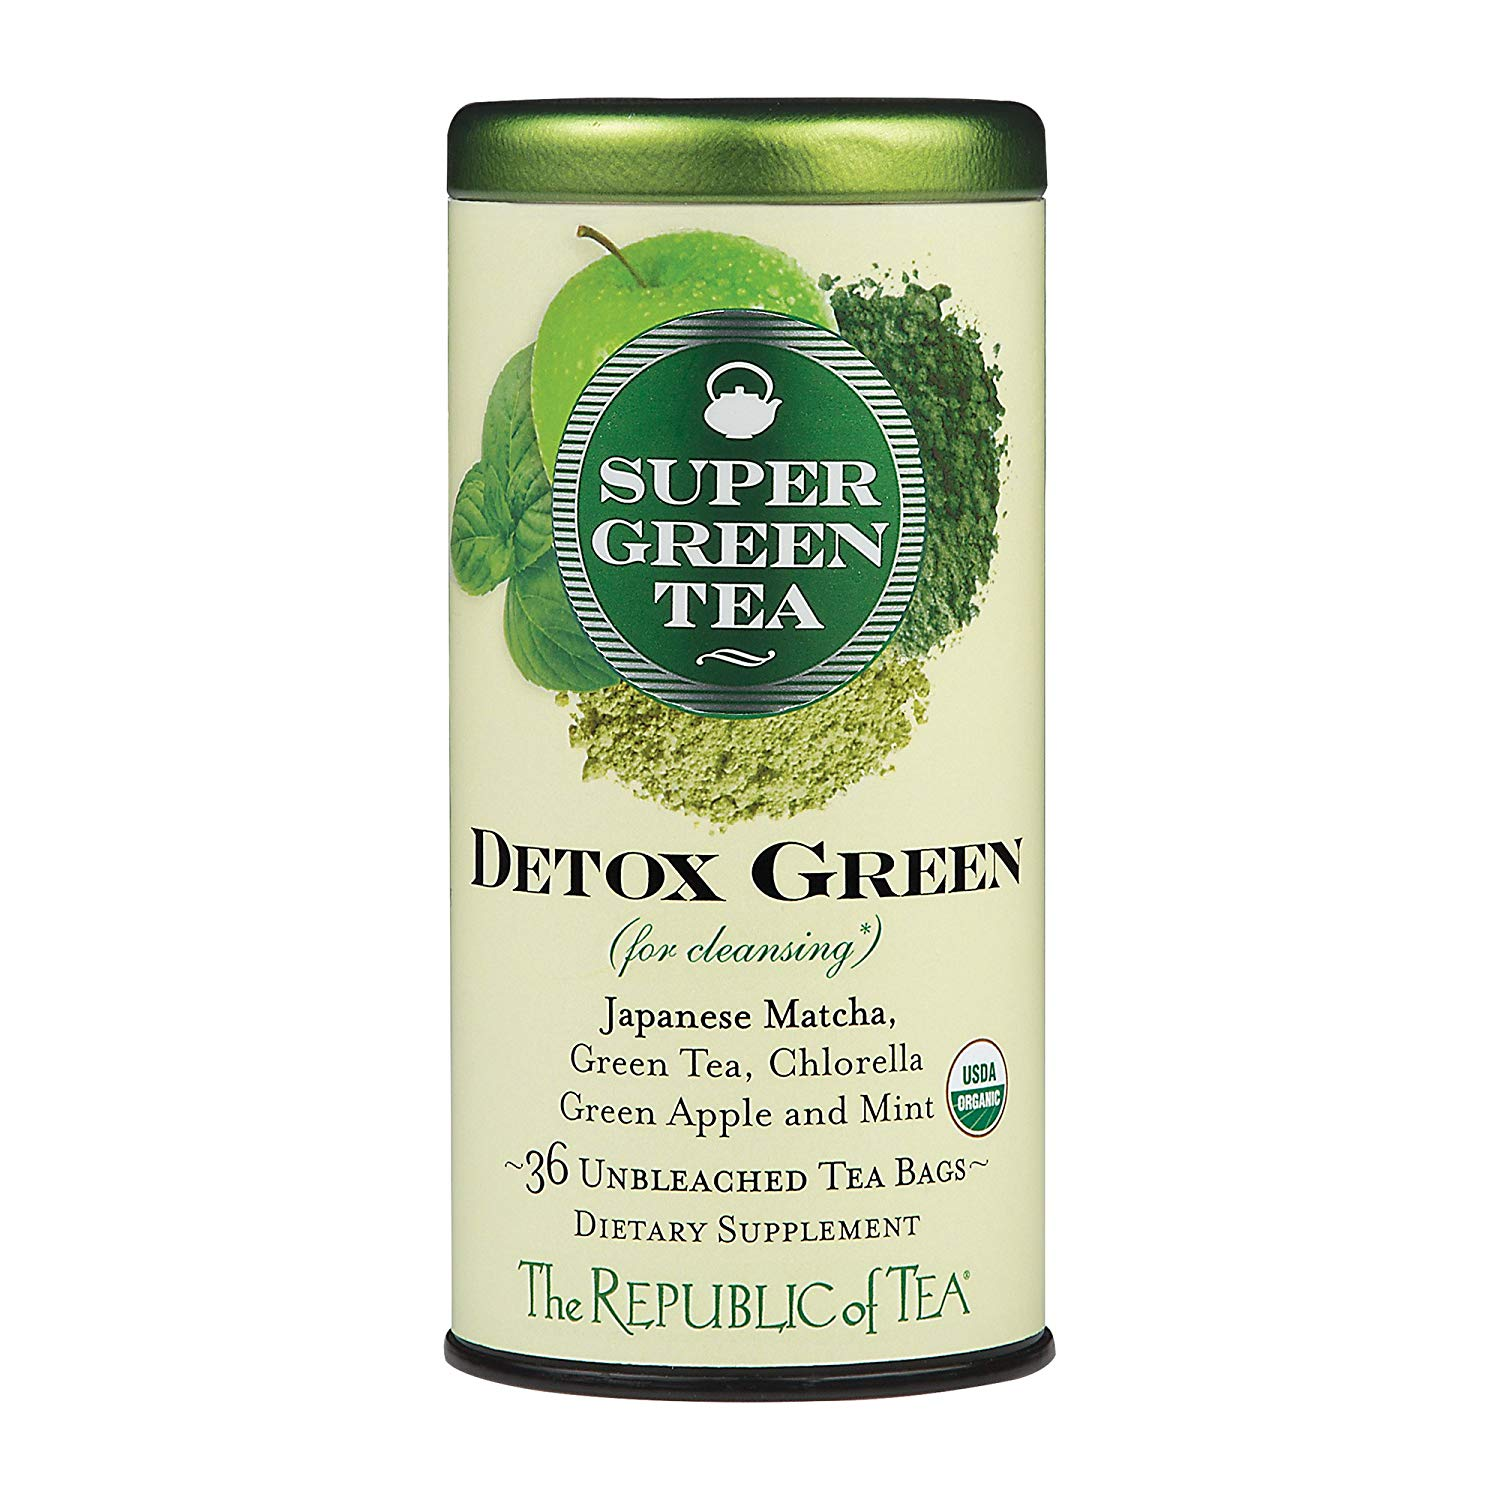 The Republic of Tea Detox Green Supergreen Tea, 36 Tea Bags, Matcha And Chlorella Tea Blend